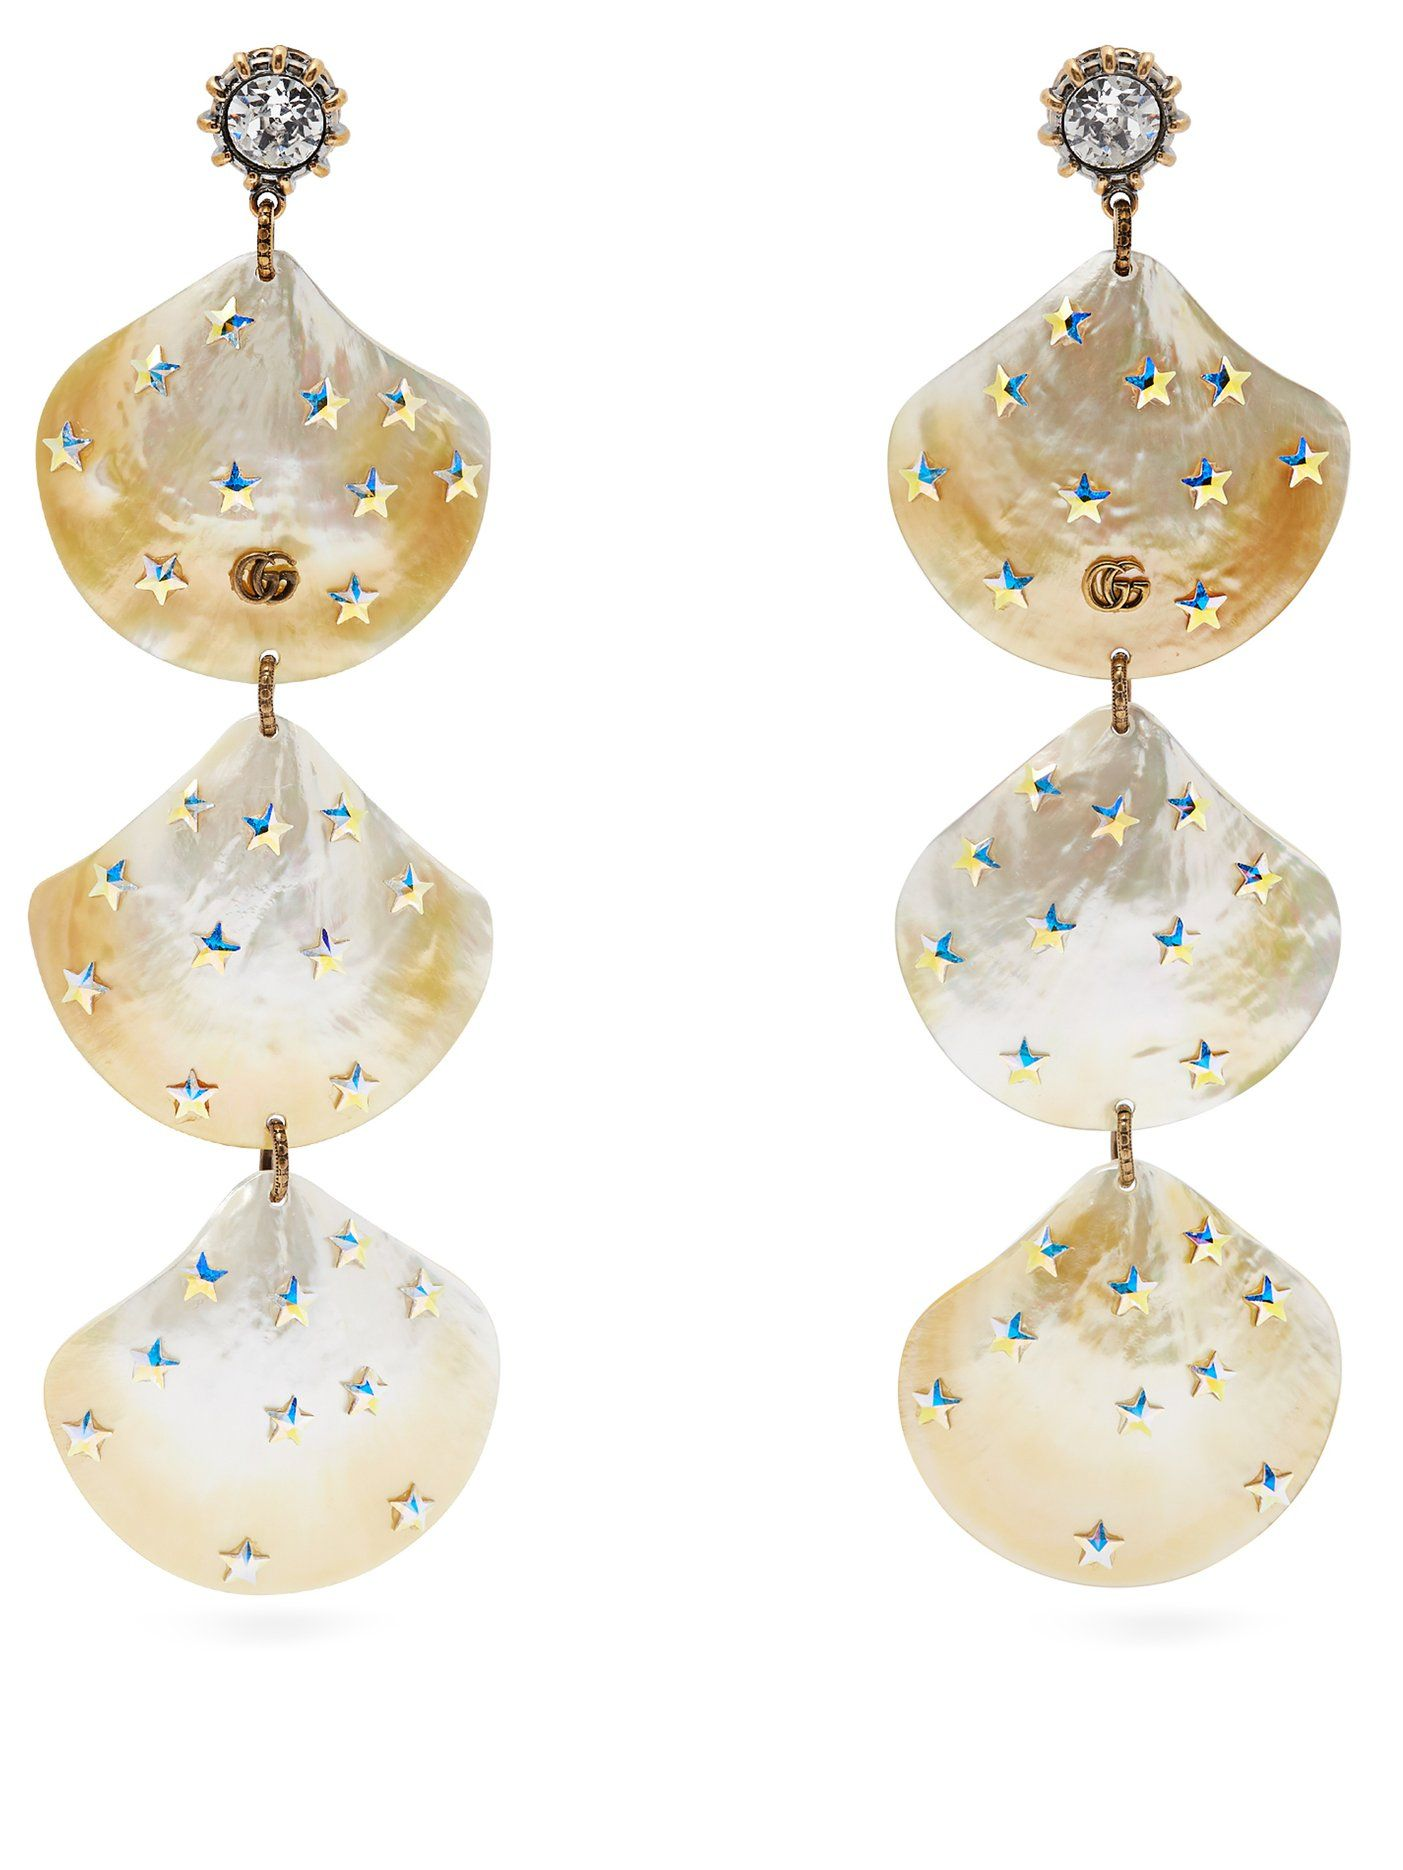 Gucci Mother of Pearl Cruise 2019 runway earrings